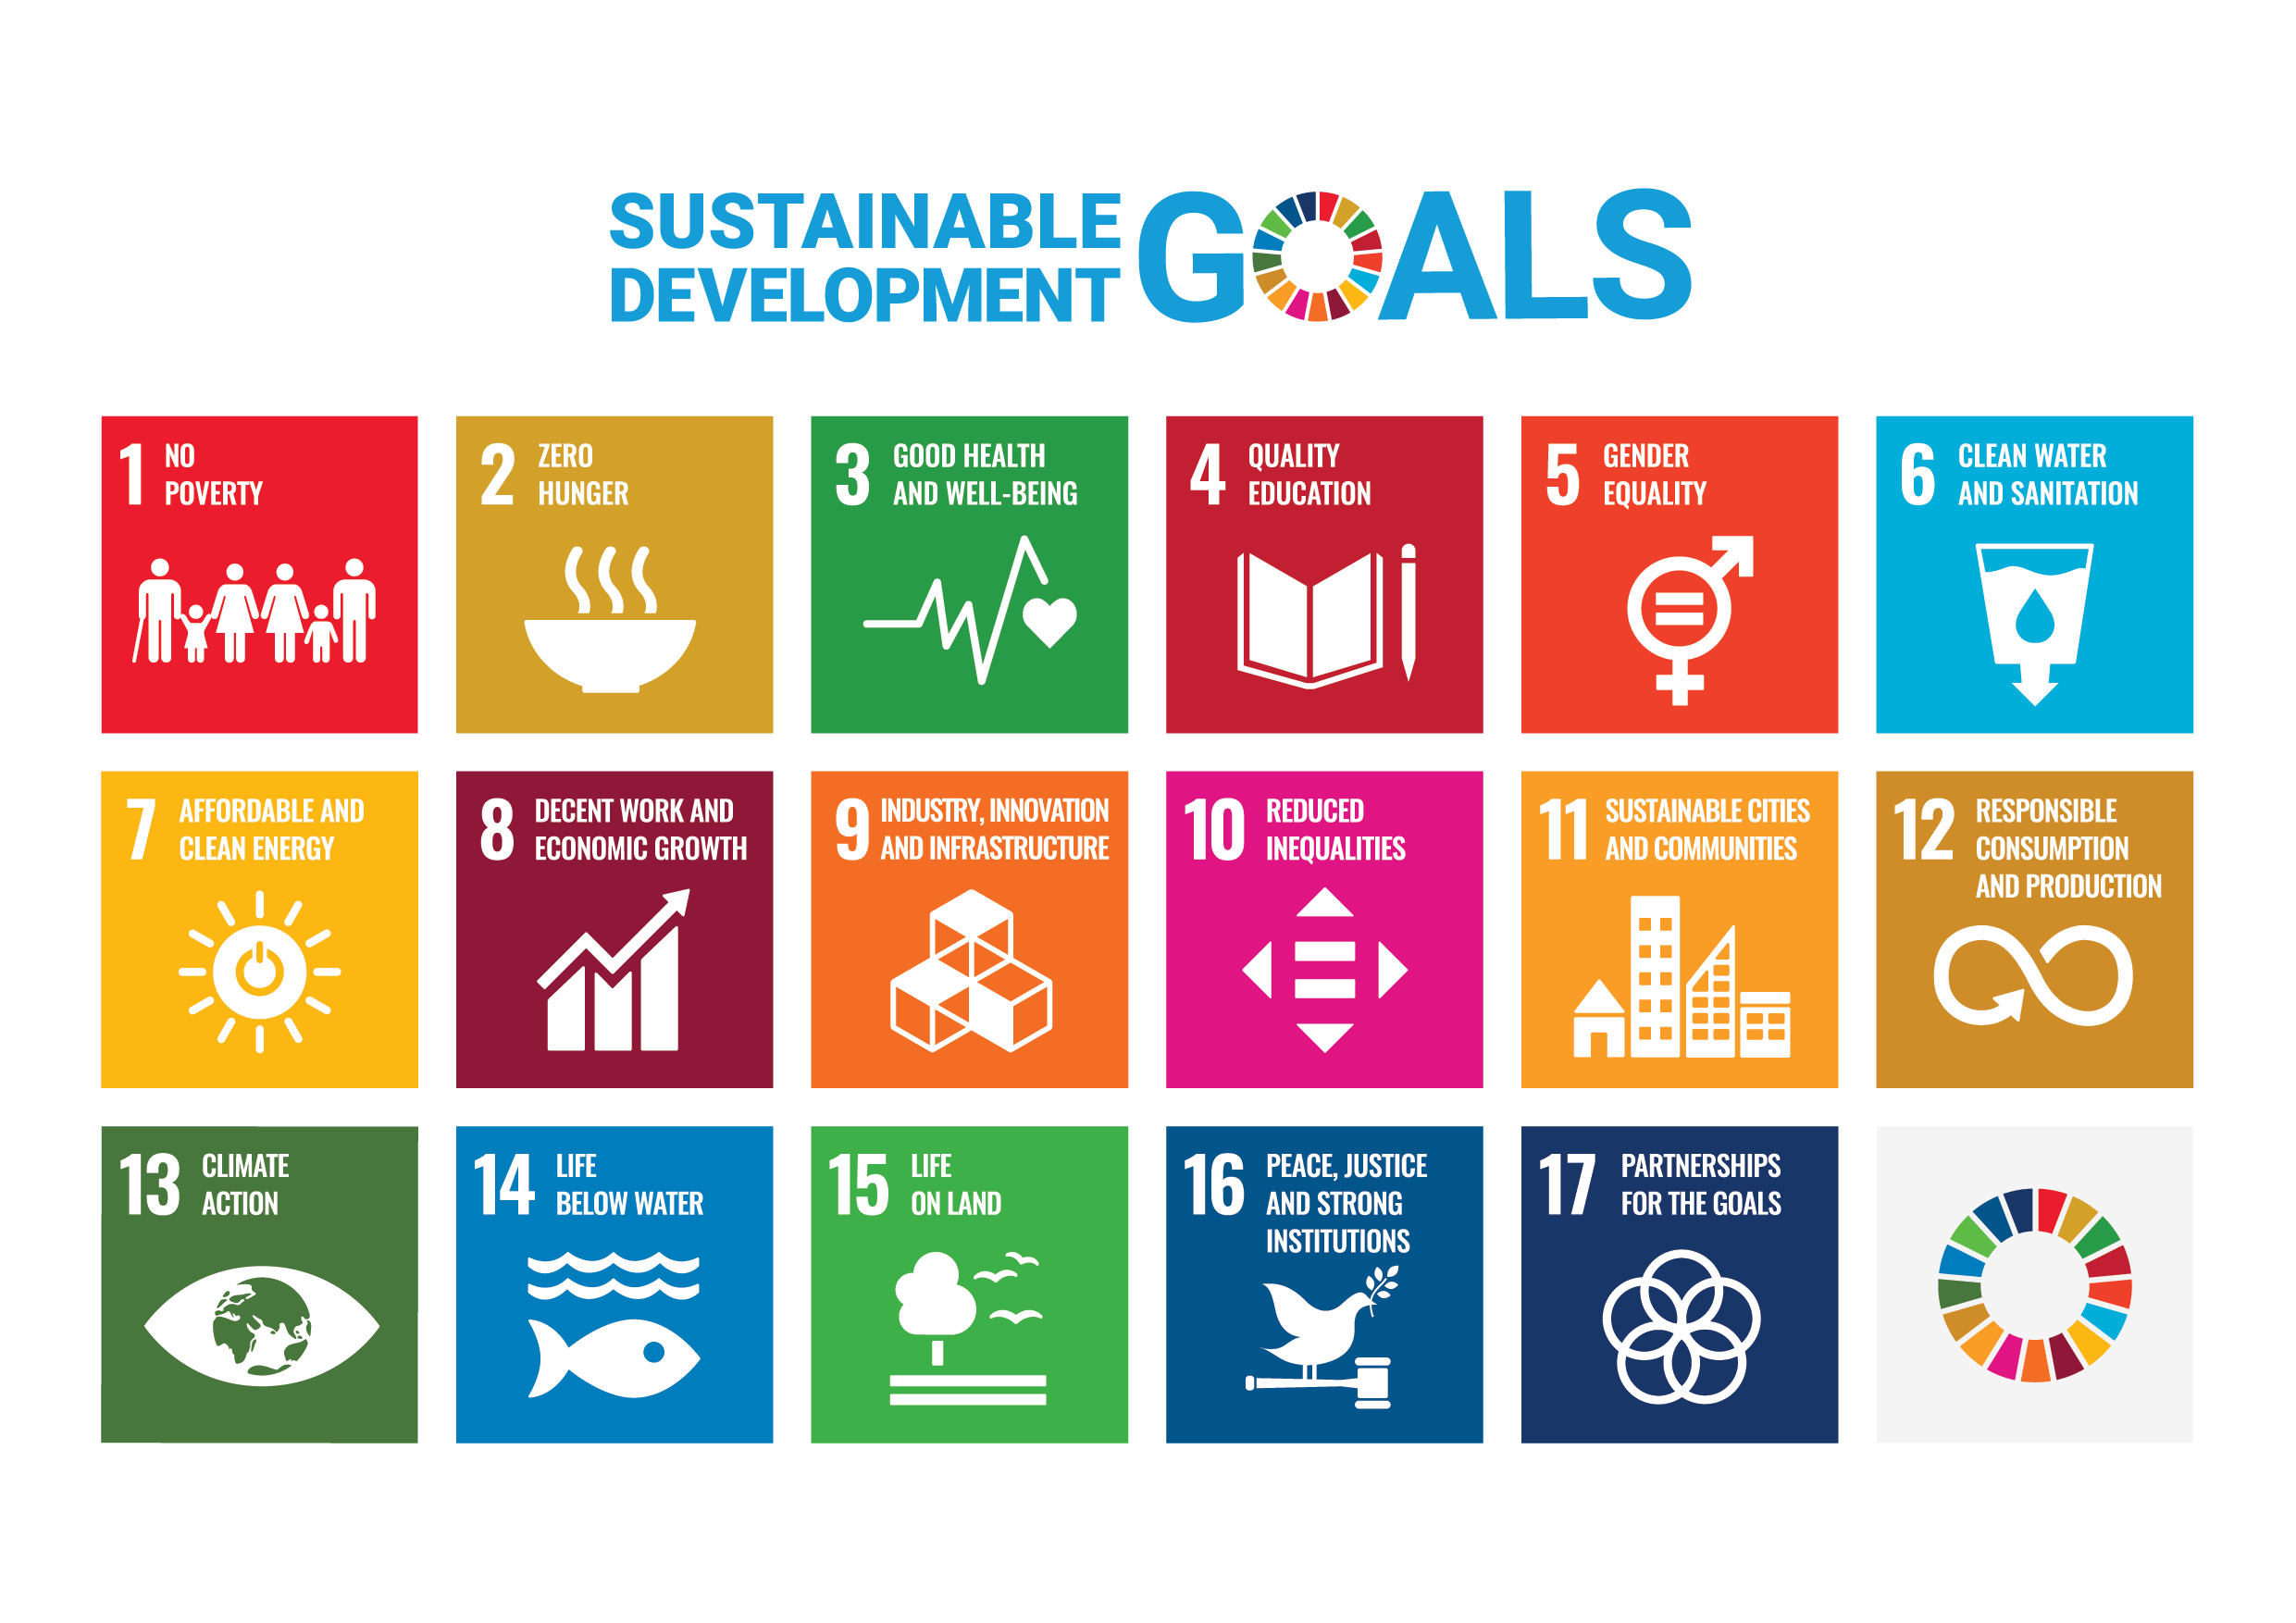 A poster showing all of the sustainable development goals.